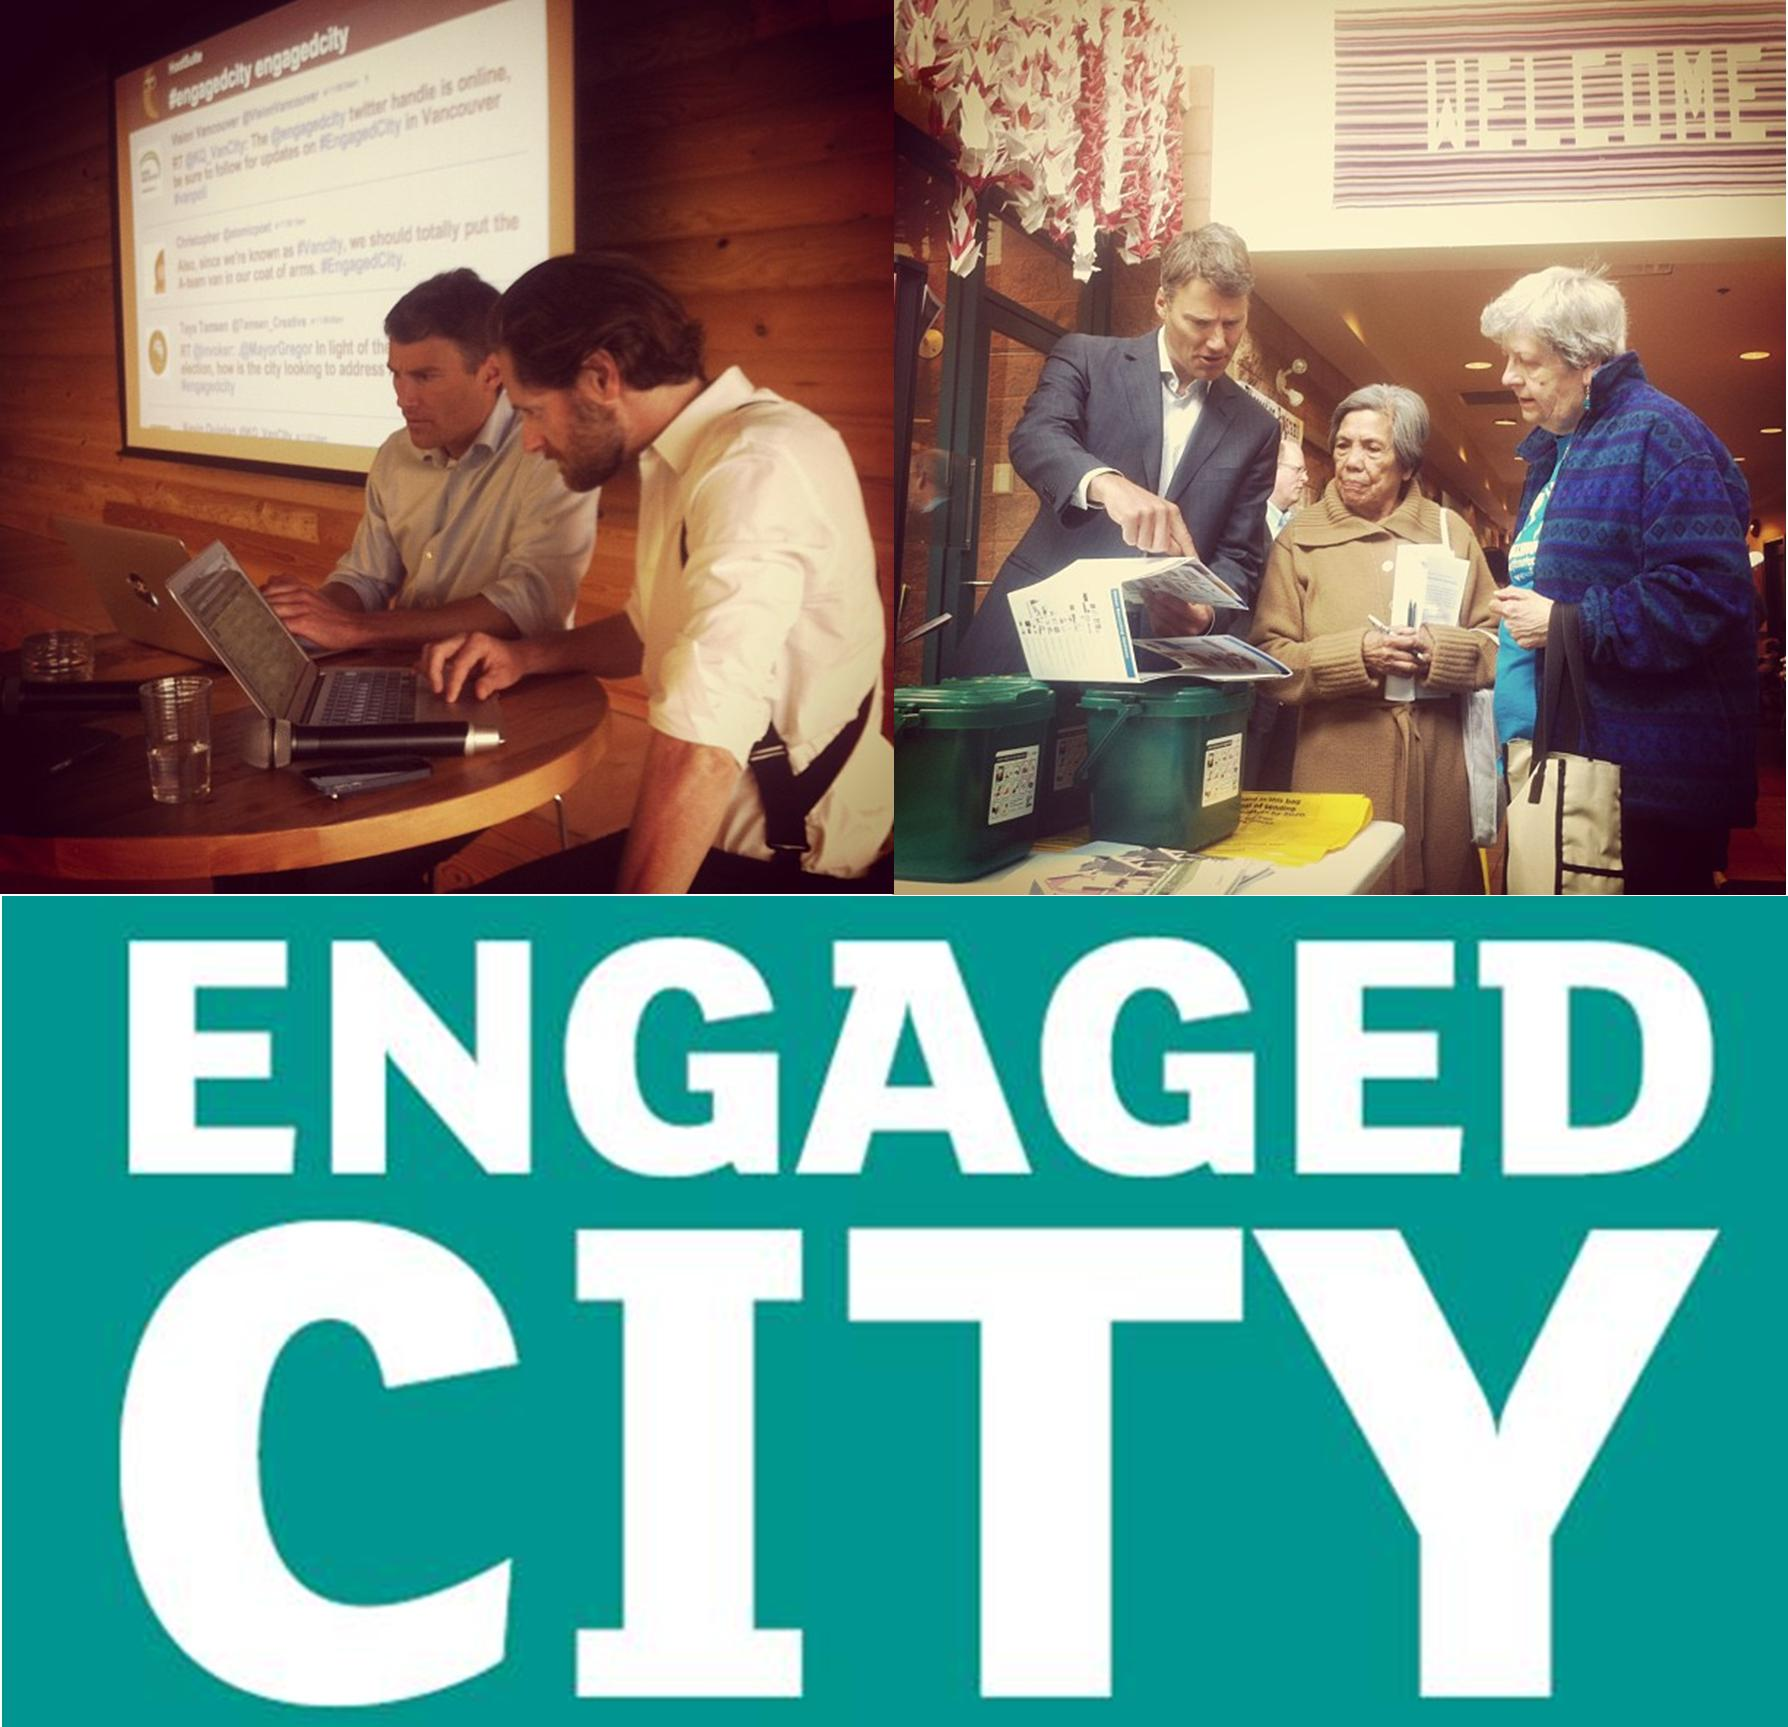 Engaged City Task Force outlines major steps to modernize civic engagement in Vancouver